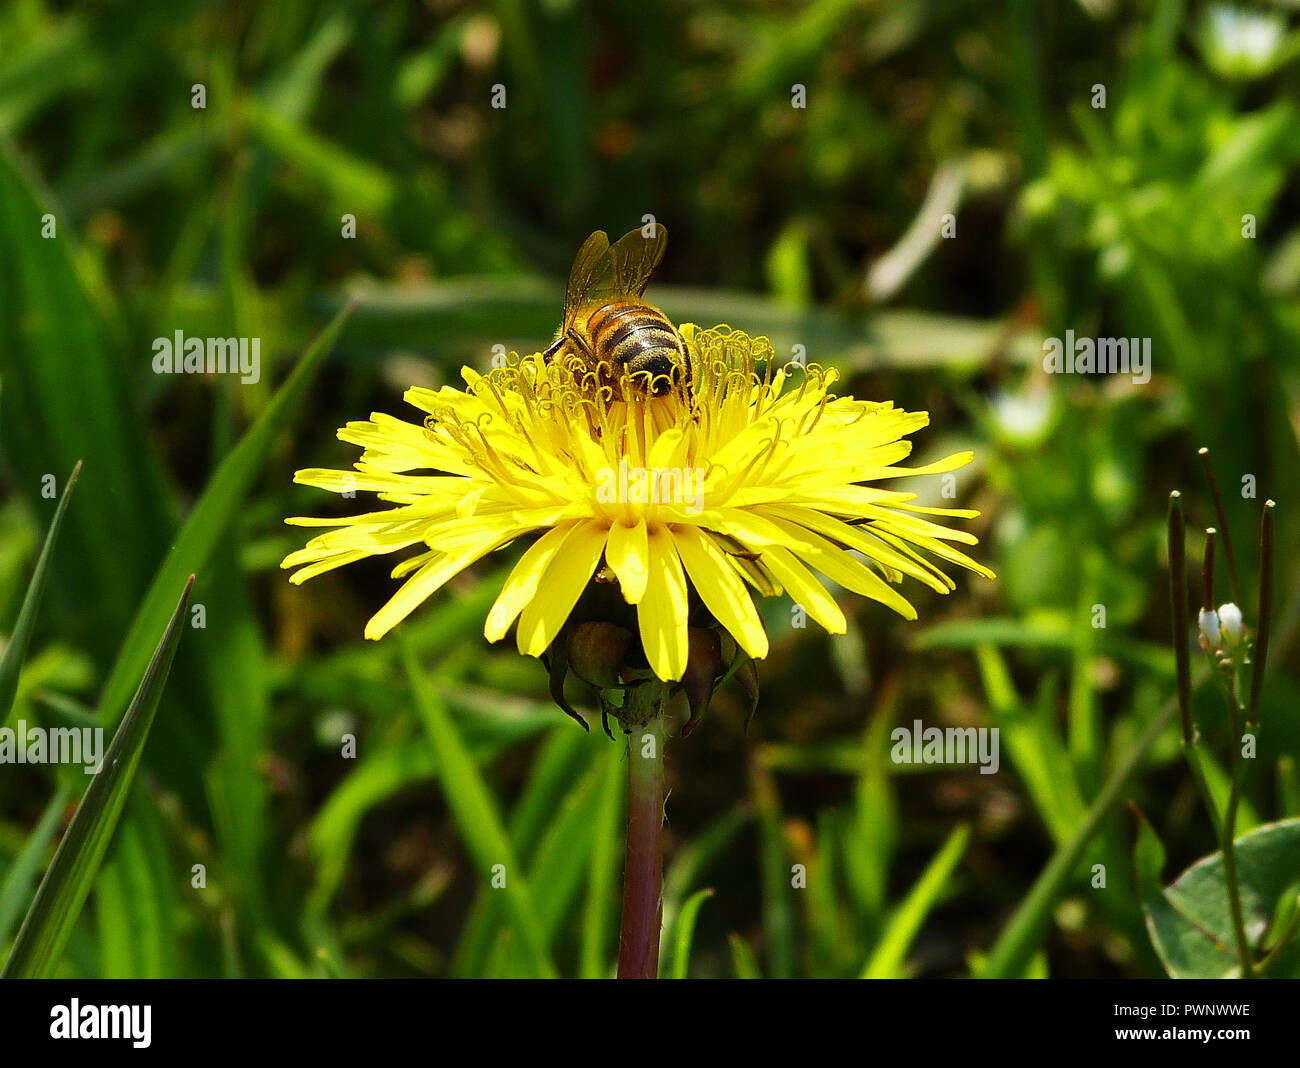 A bee pollinates a yellow flower - Stock Image